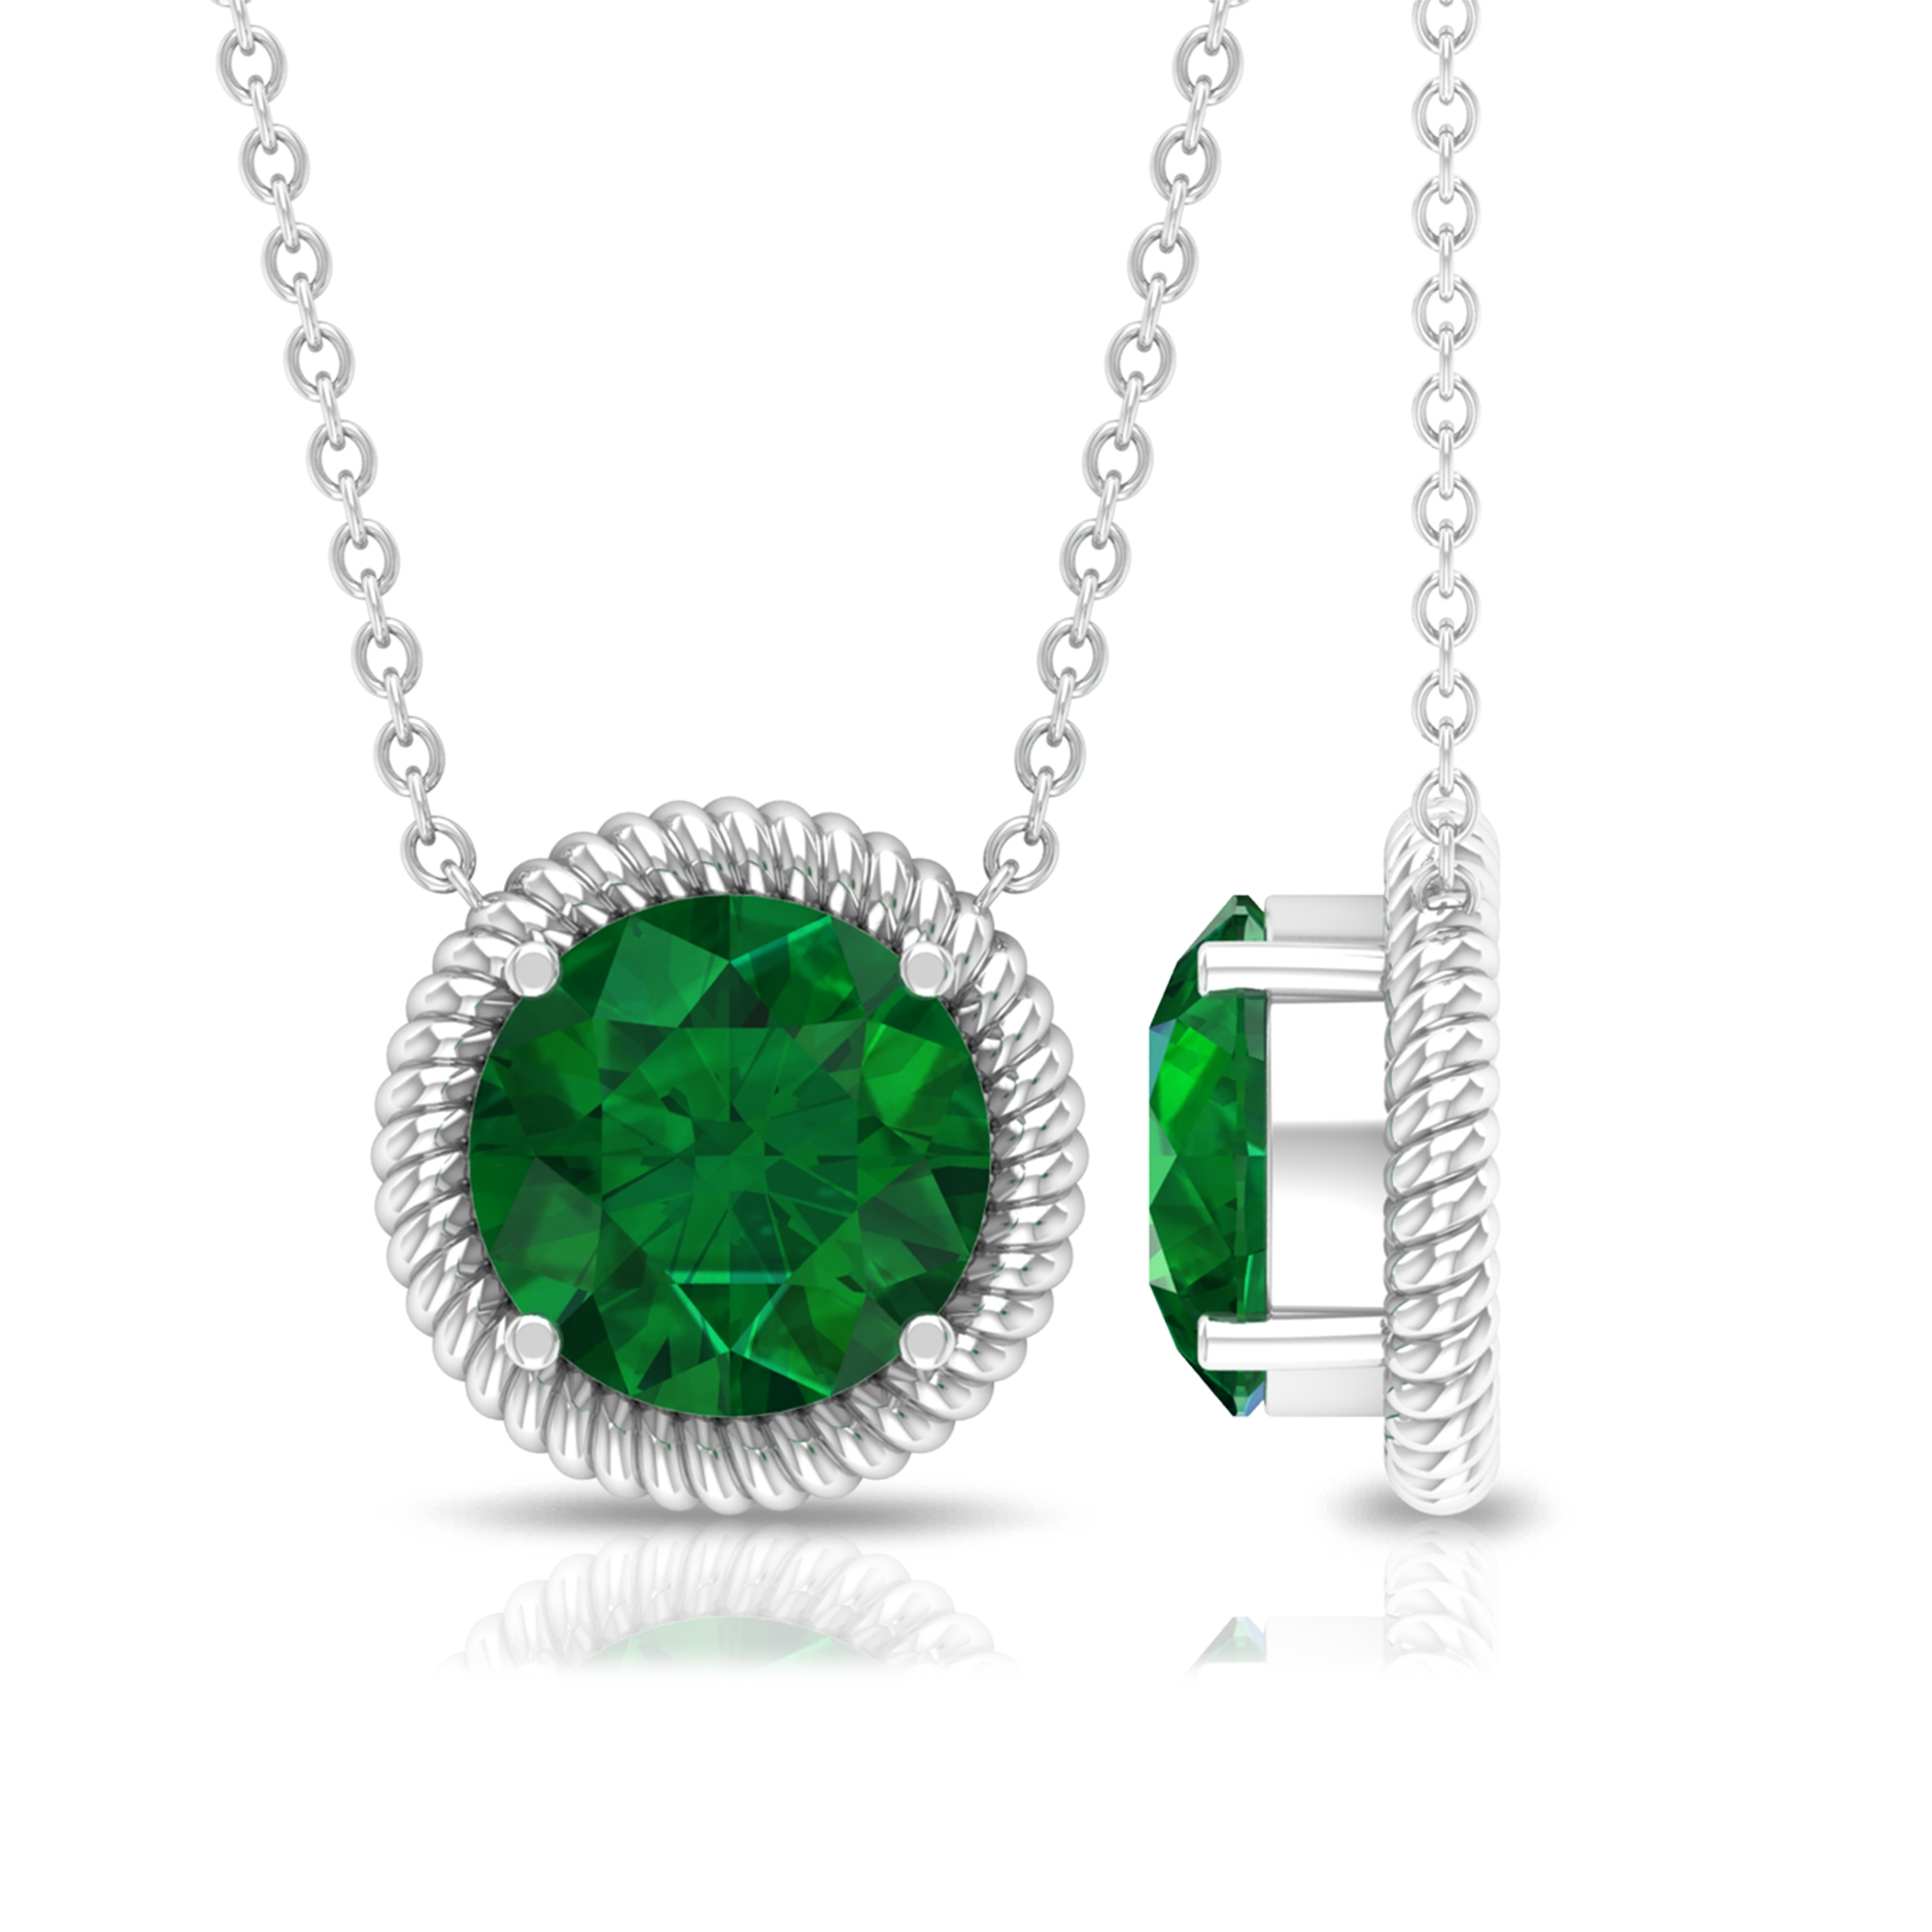 8 MM Round Cut Emerald Solitaire Necklace in 4 Prong Setting with Rope Frame